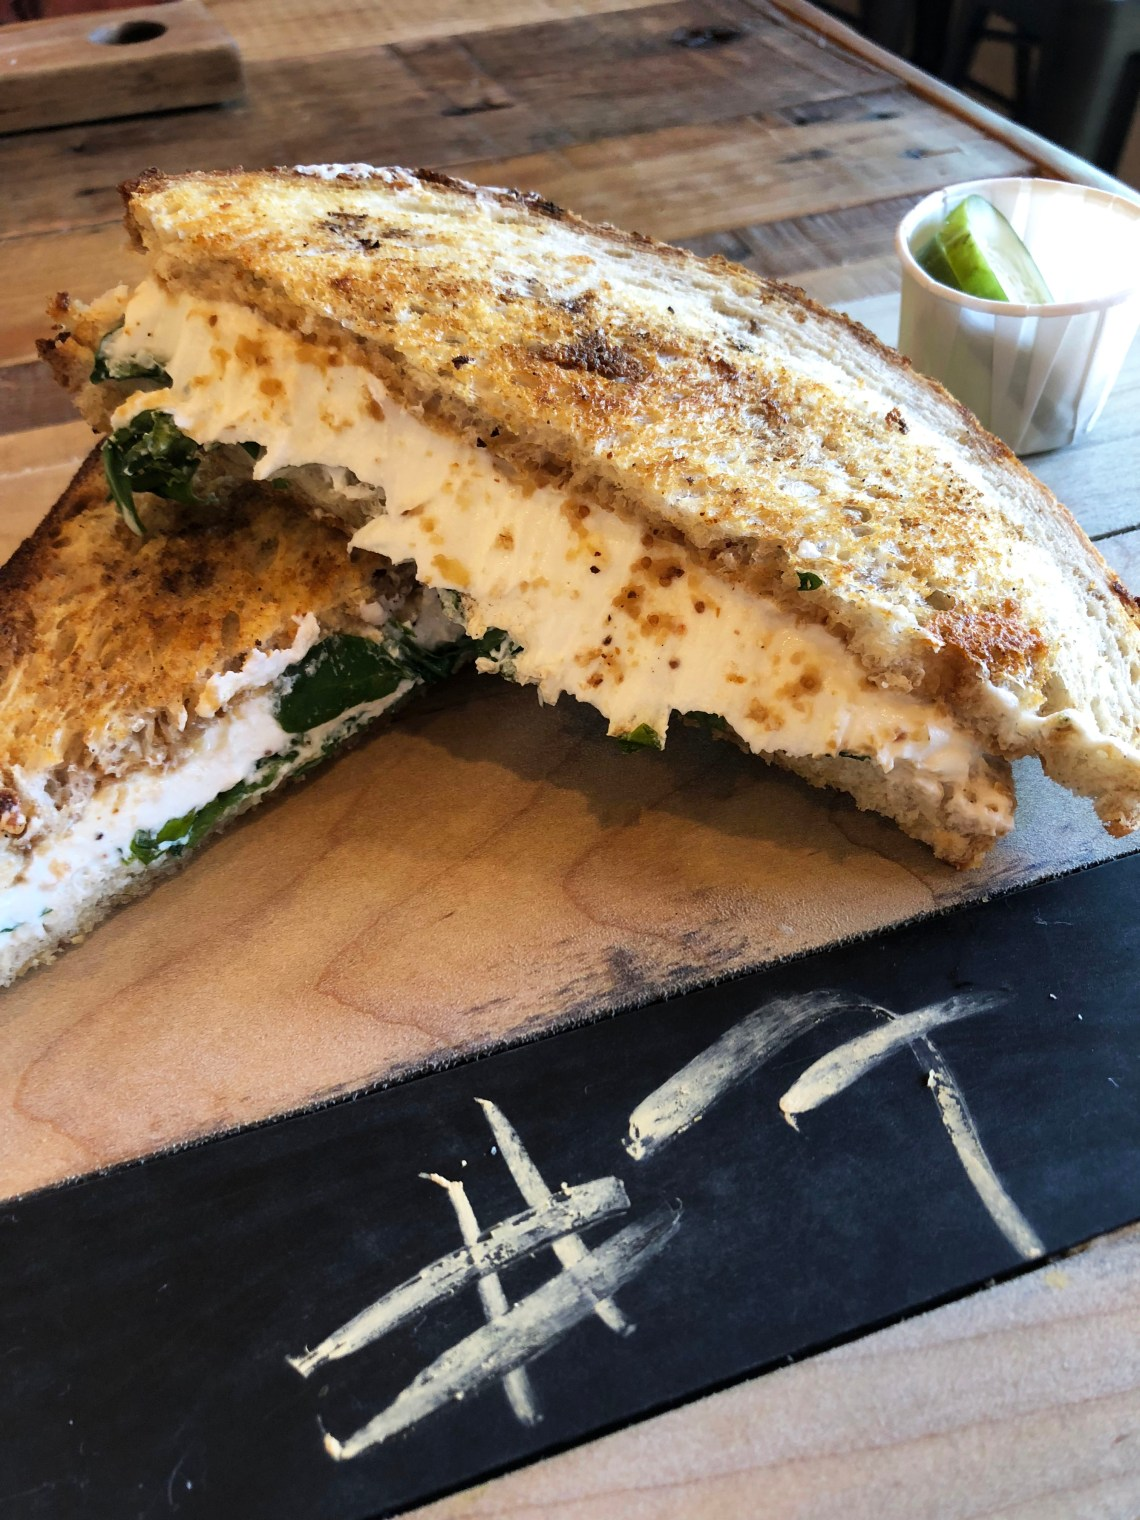 Fromage Grille - Chevre